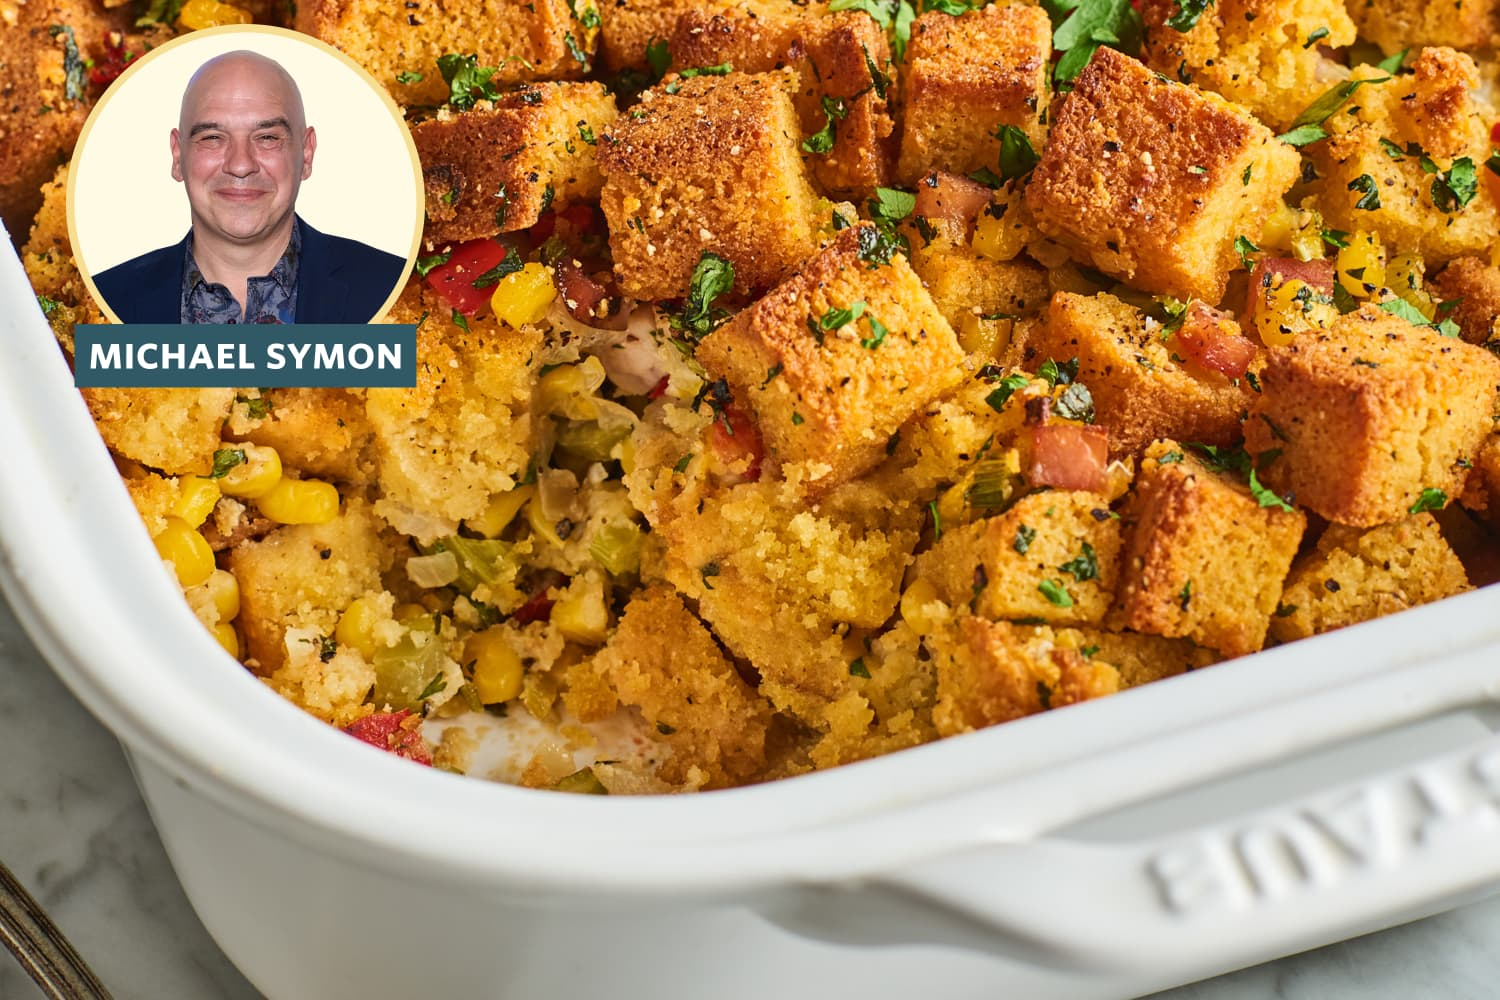 My Honest Review of Michael Symon's Rule-Breaking Cornbread Stuffing